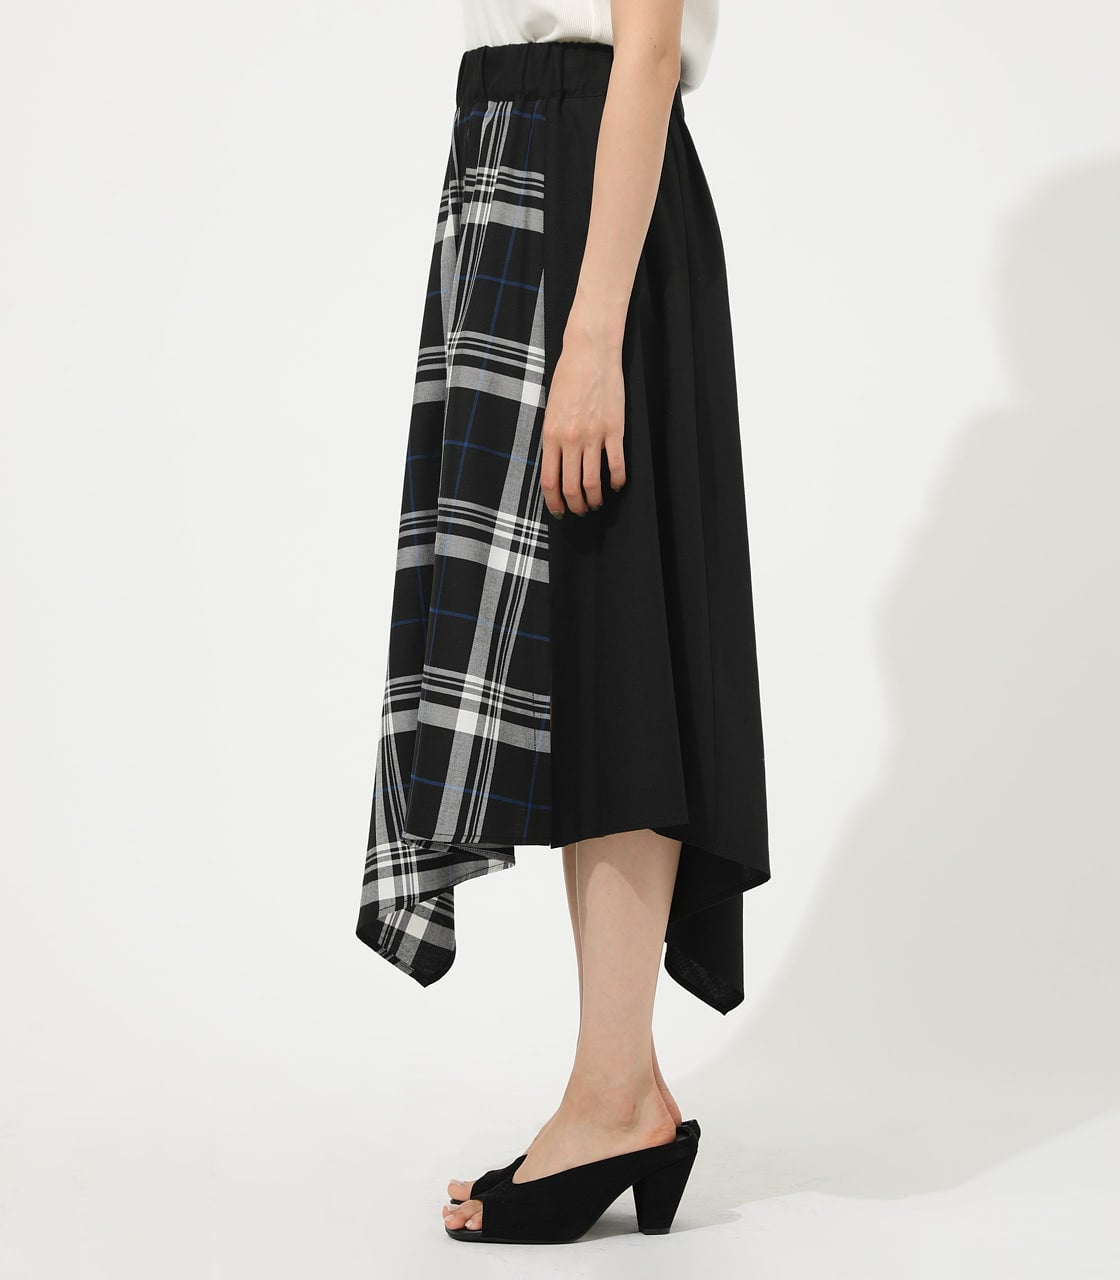 【AZUL BY MOUSSY】CHECK ASYMMETRY PATTERN SKIRT 詳細画像 柄BLK 5